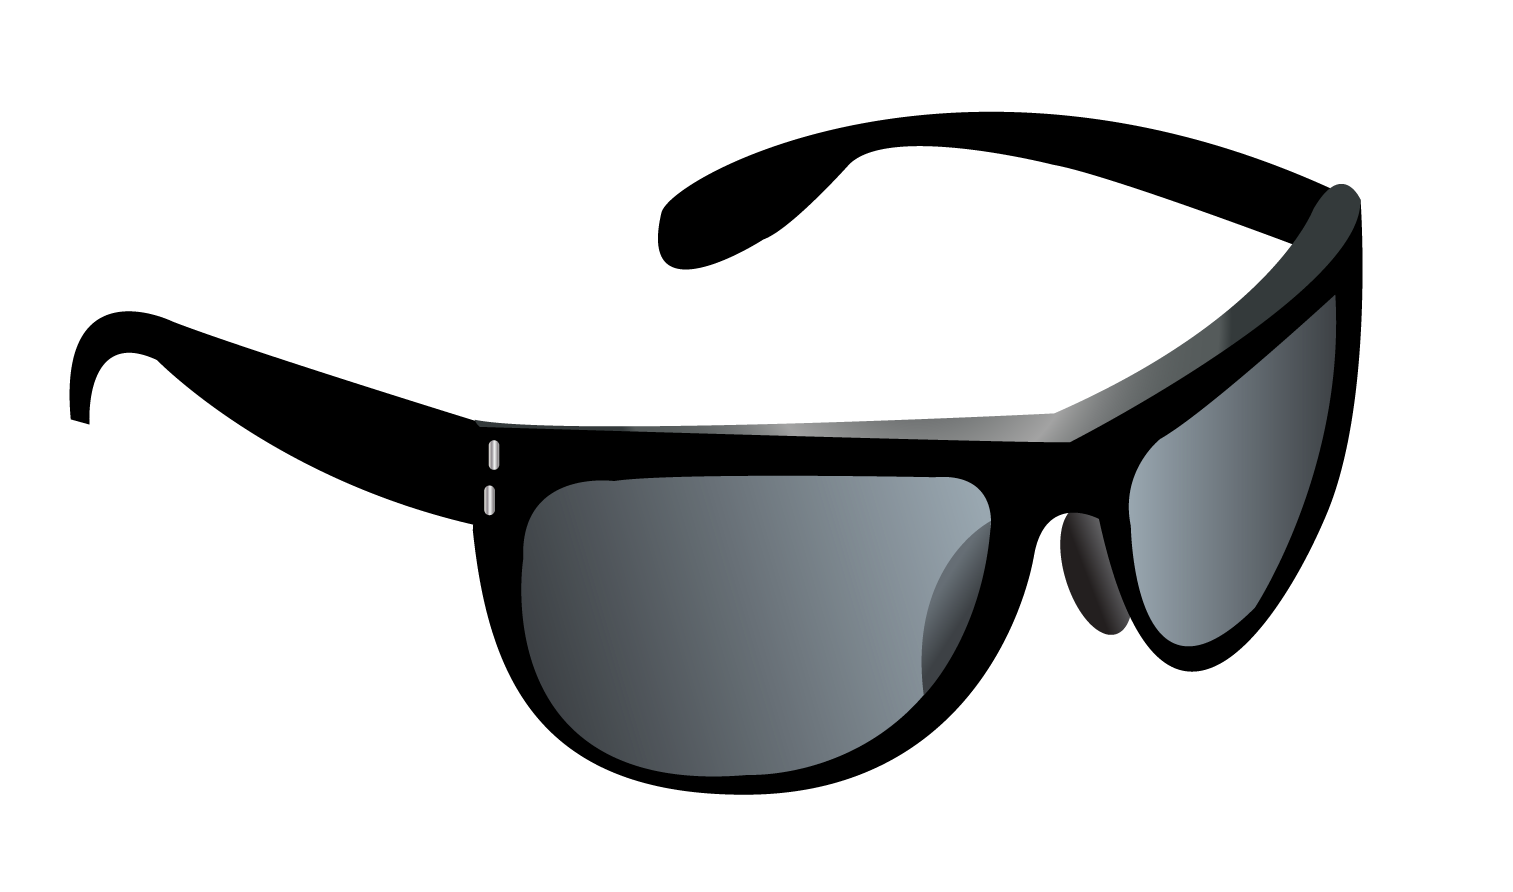 Cat eye sunglasses clipart svg library download Ray Ban Clubmaster Black Sunglasses Black And White Clipart ... svg library download